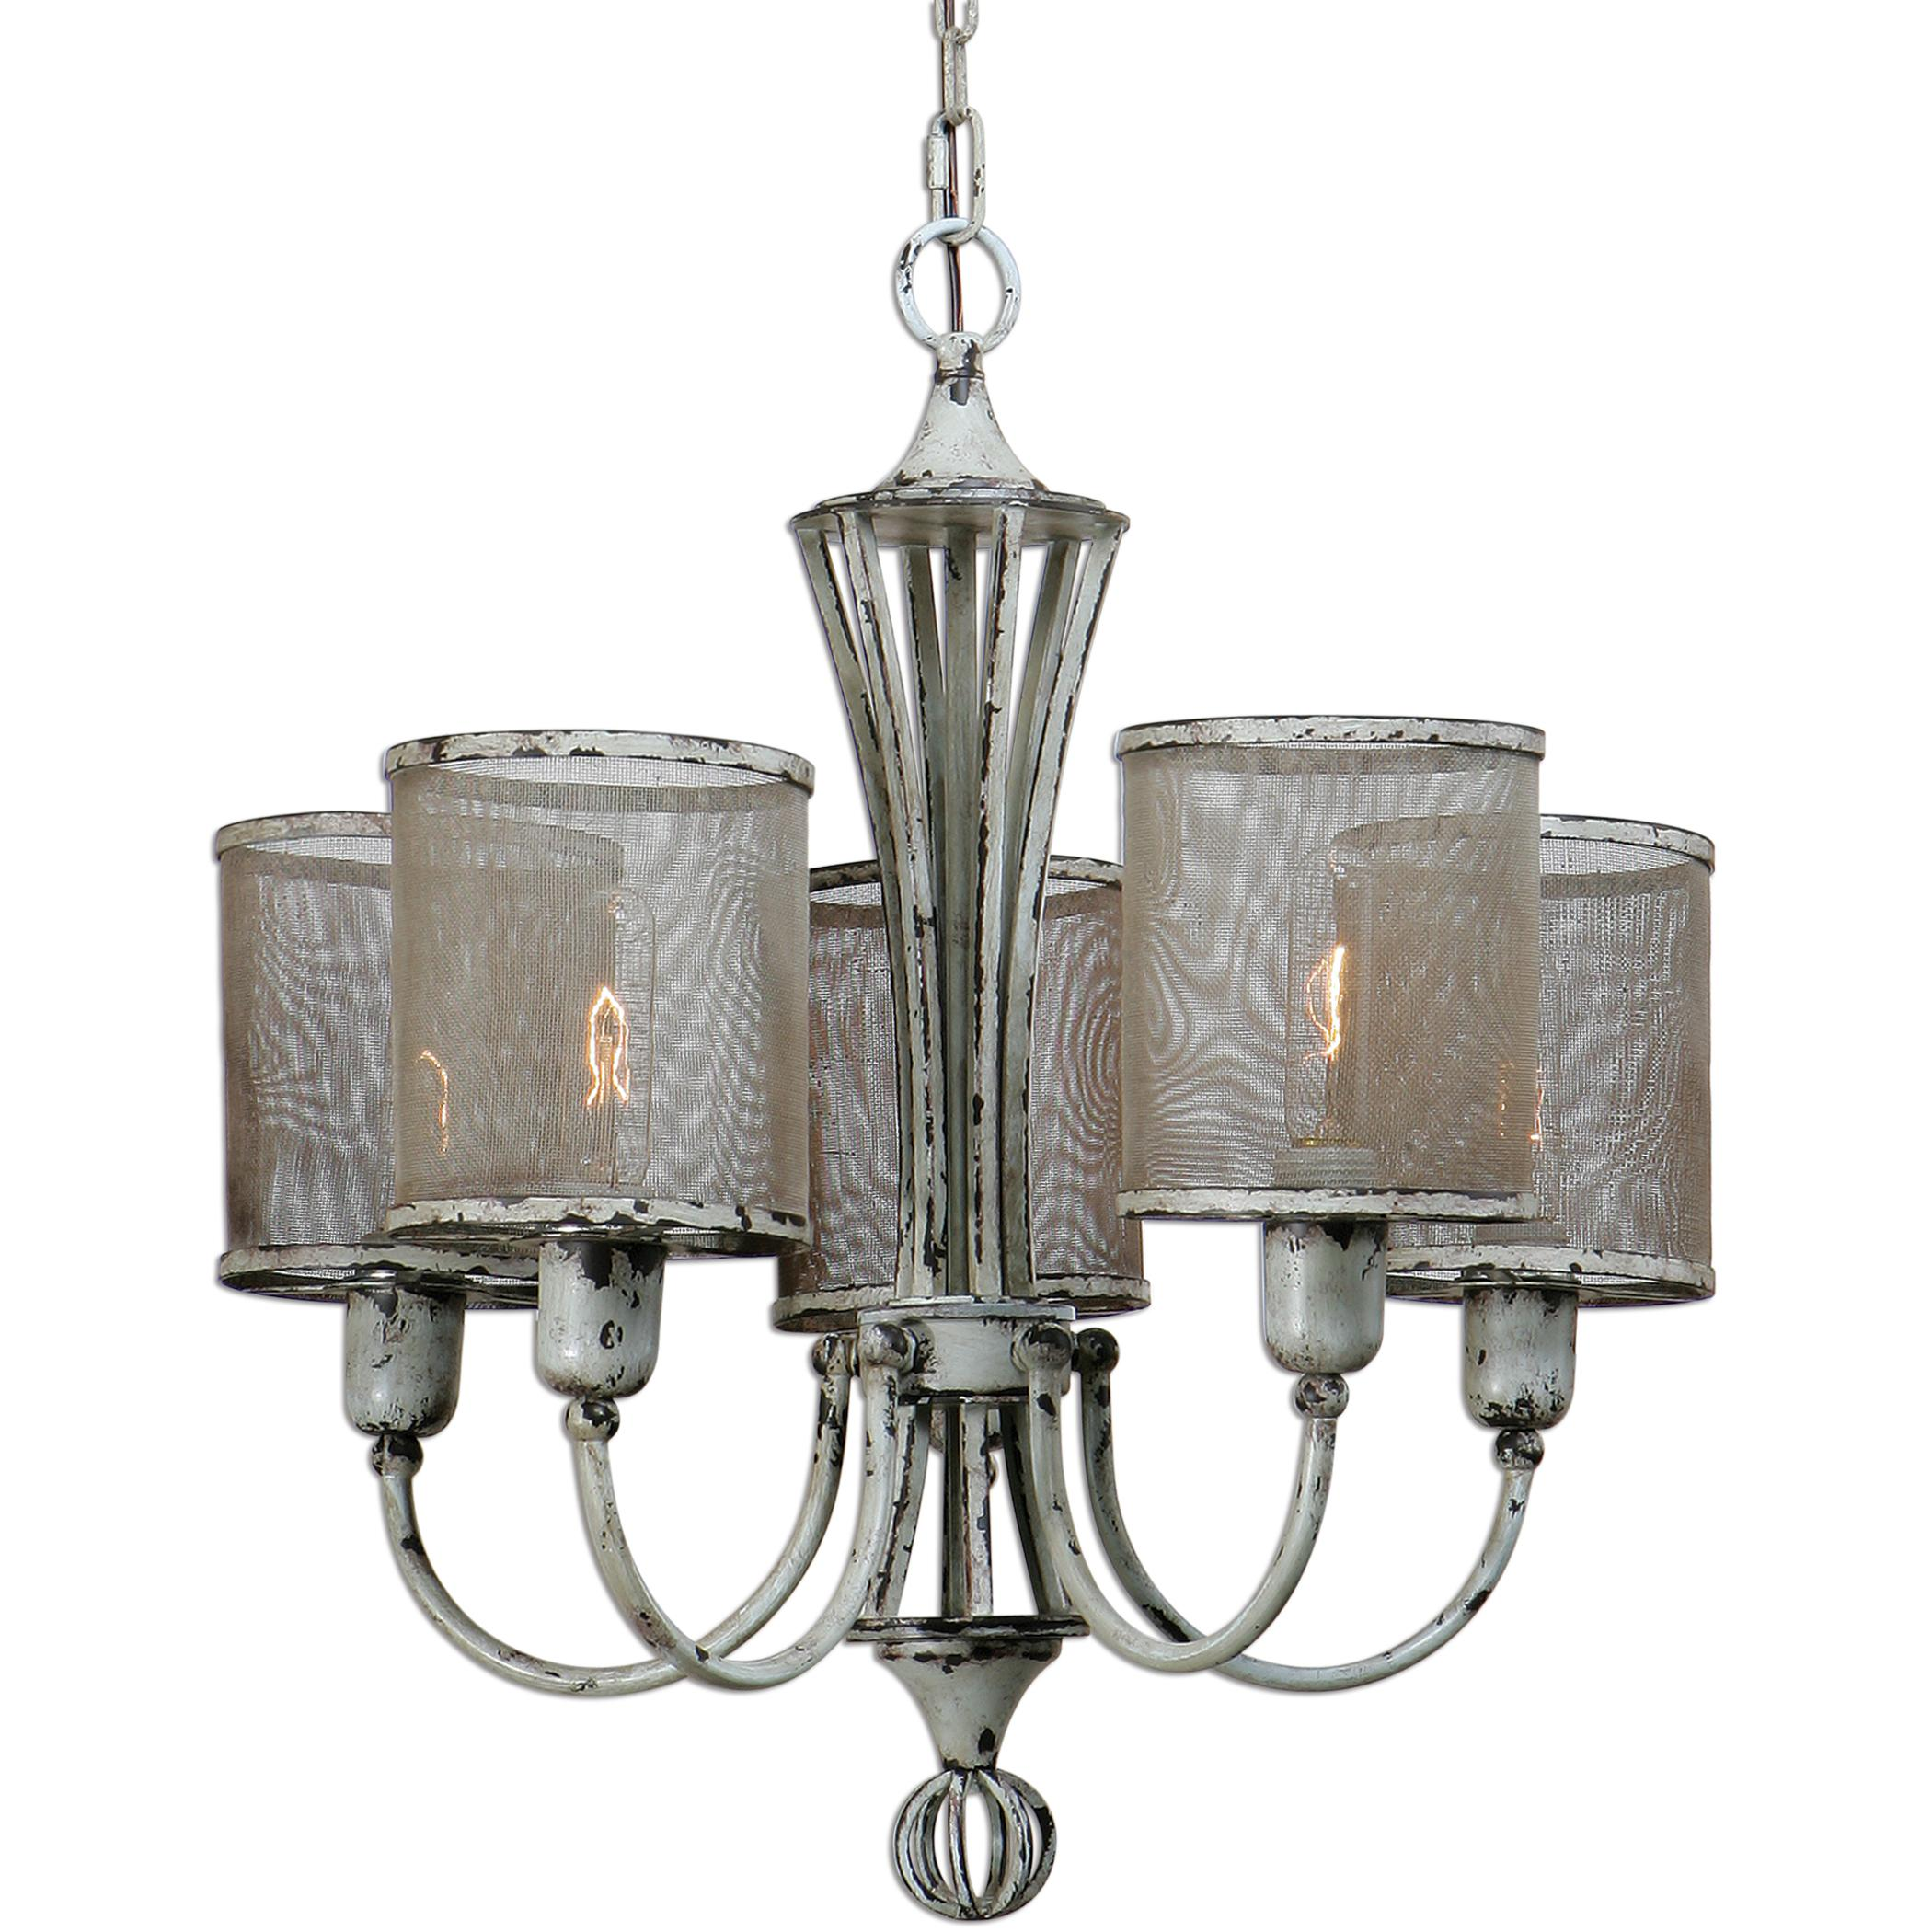 Uttermost Lighting Fixtures Uttermost Pontoise 5 Light Vintage Chandelie - Item Number: 21259